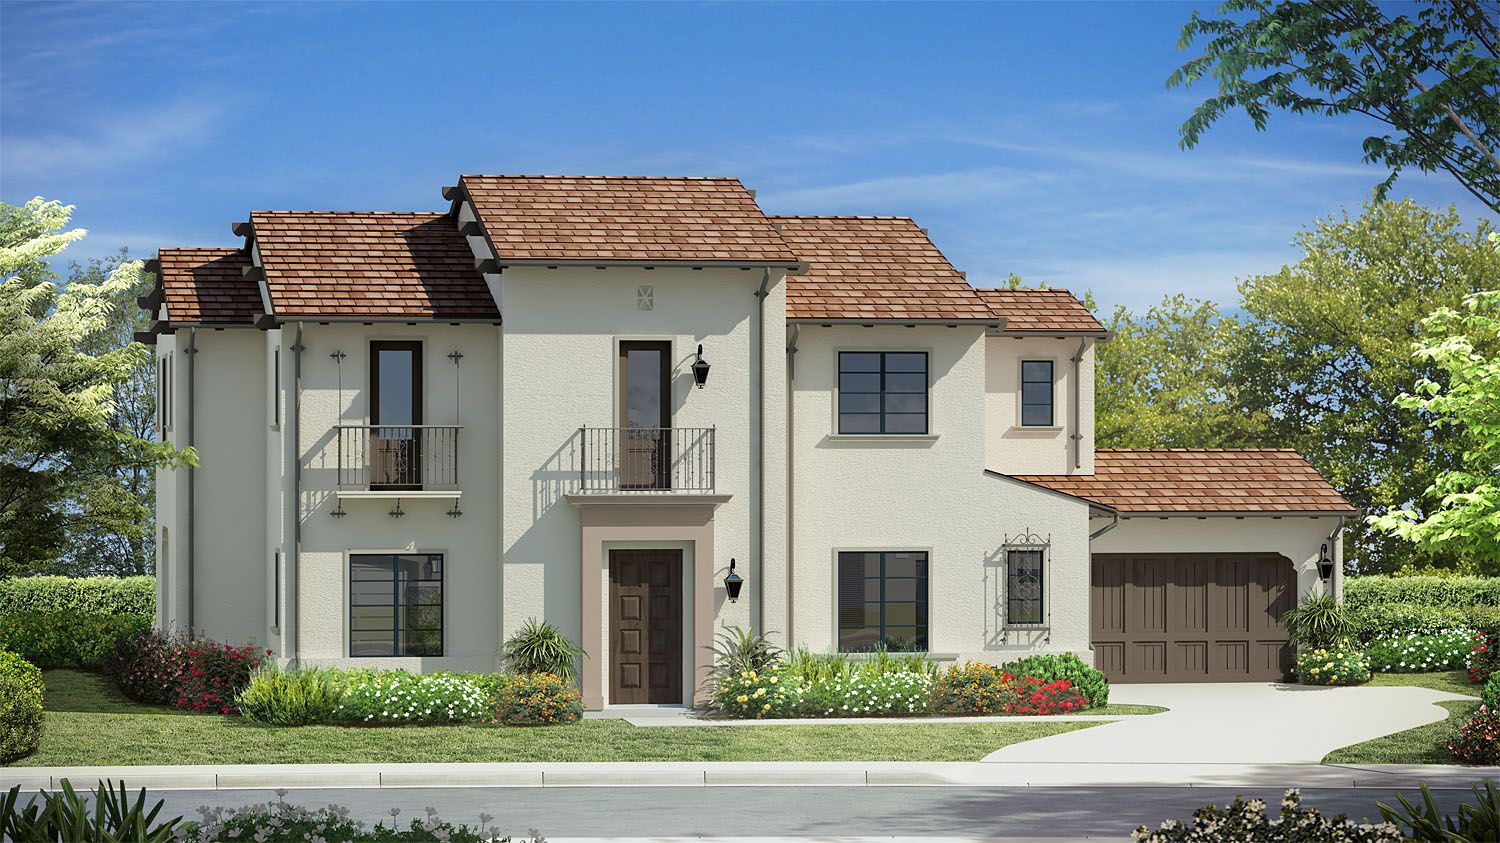 Single Family for Sale at Estancia At Cielo - Residence One 18252 Avenida Manantial Rancho Santa Fe, California 92067 United States